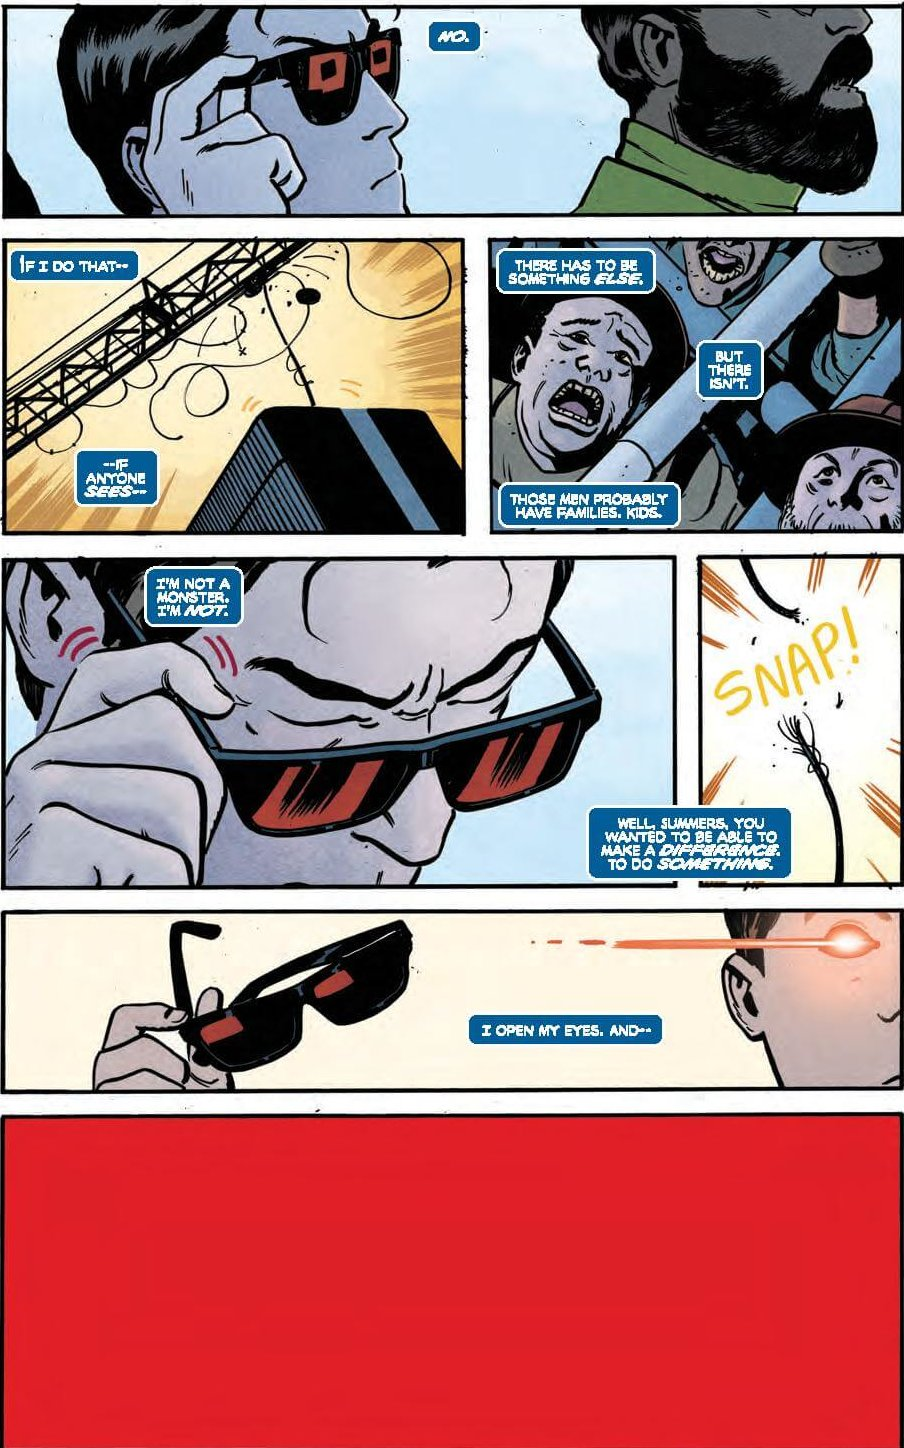 Full Page: Scott decides to reveal his powers and help.